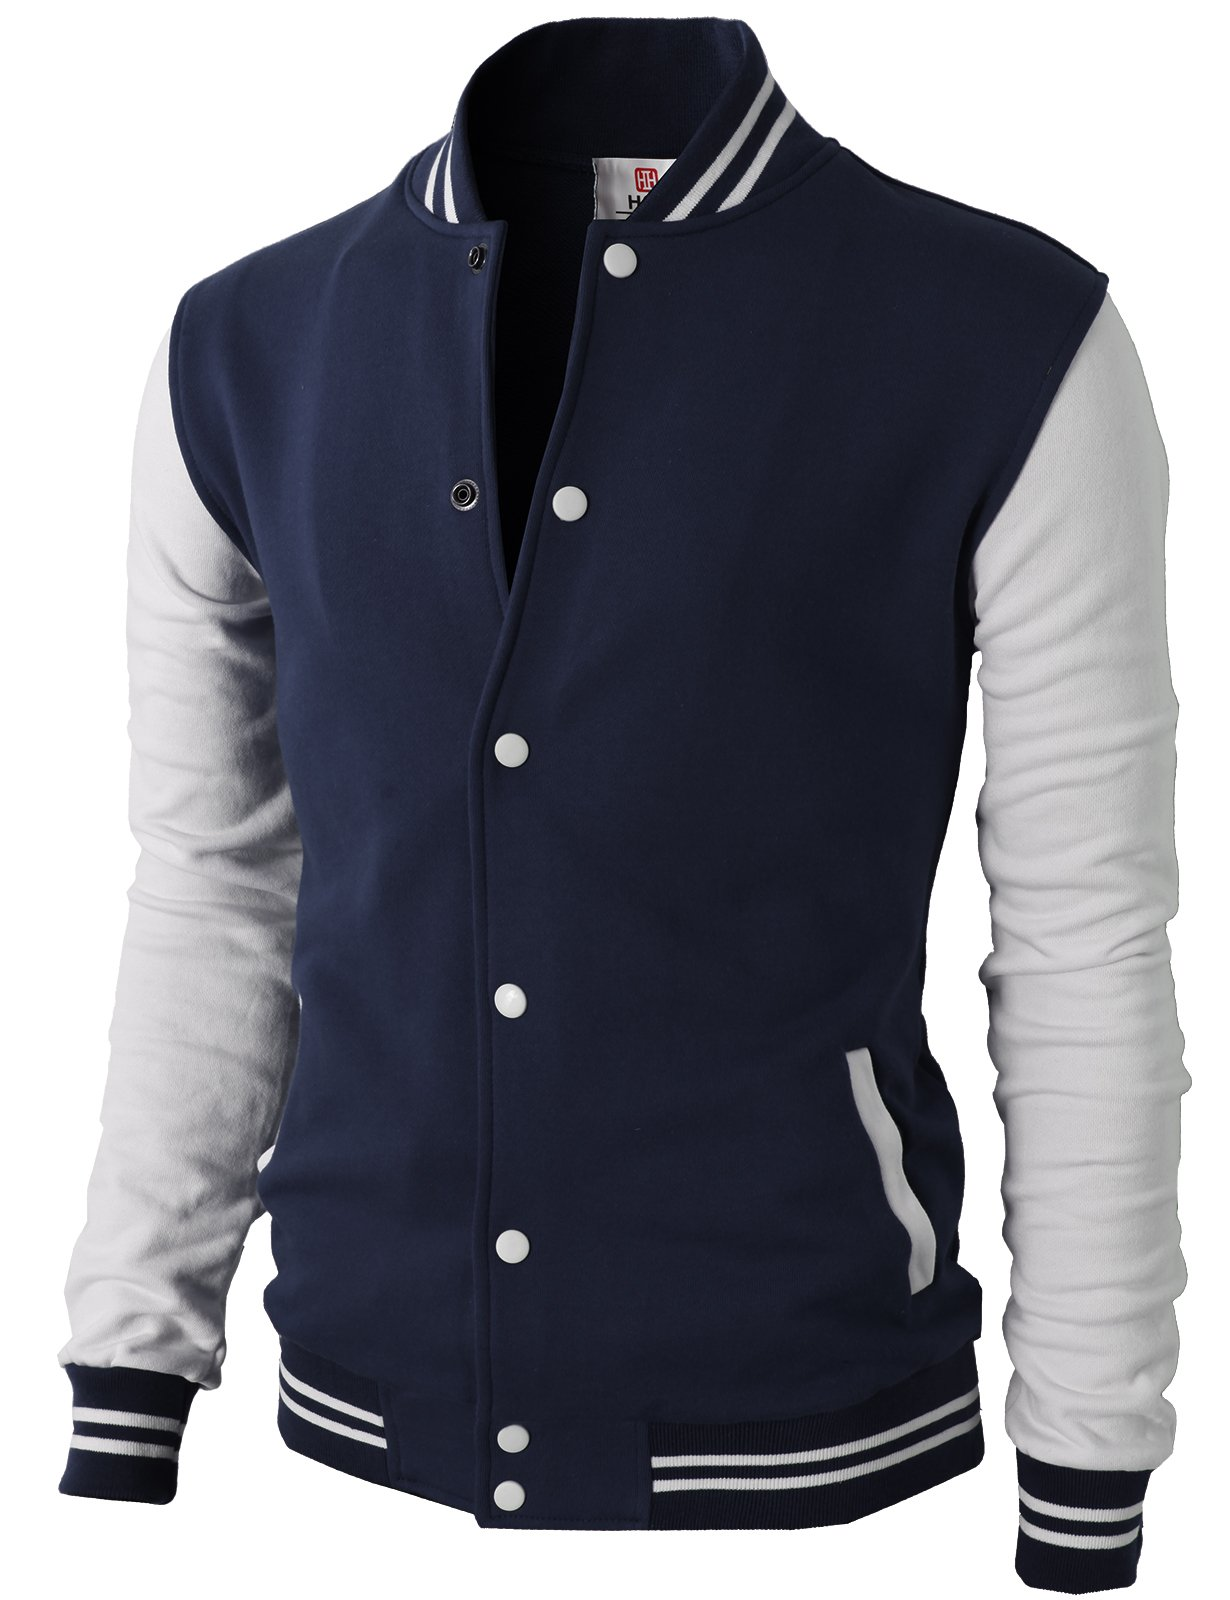 H2H Mens Slim Fit Cotton Varsity Baseball Bomber Jacket Navy US XL/Asia 2XL (CMOJA083) by H2H